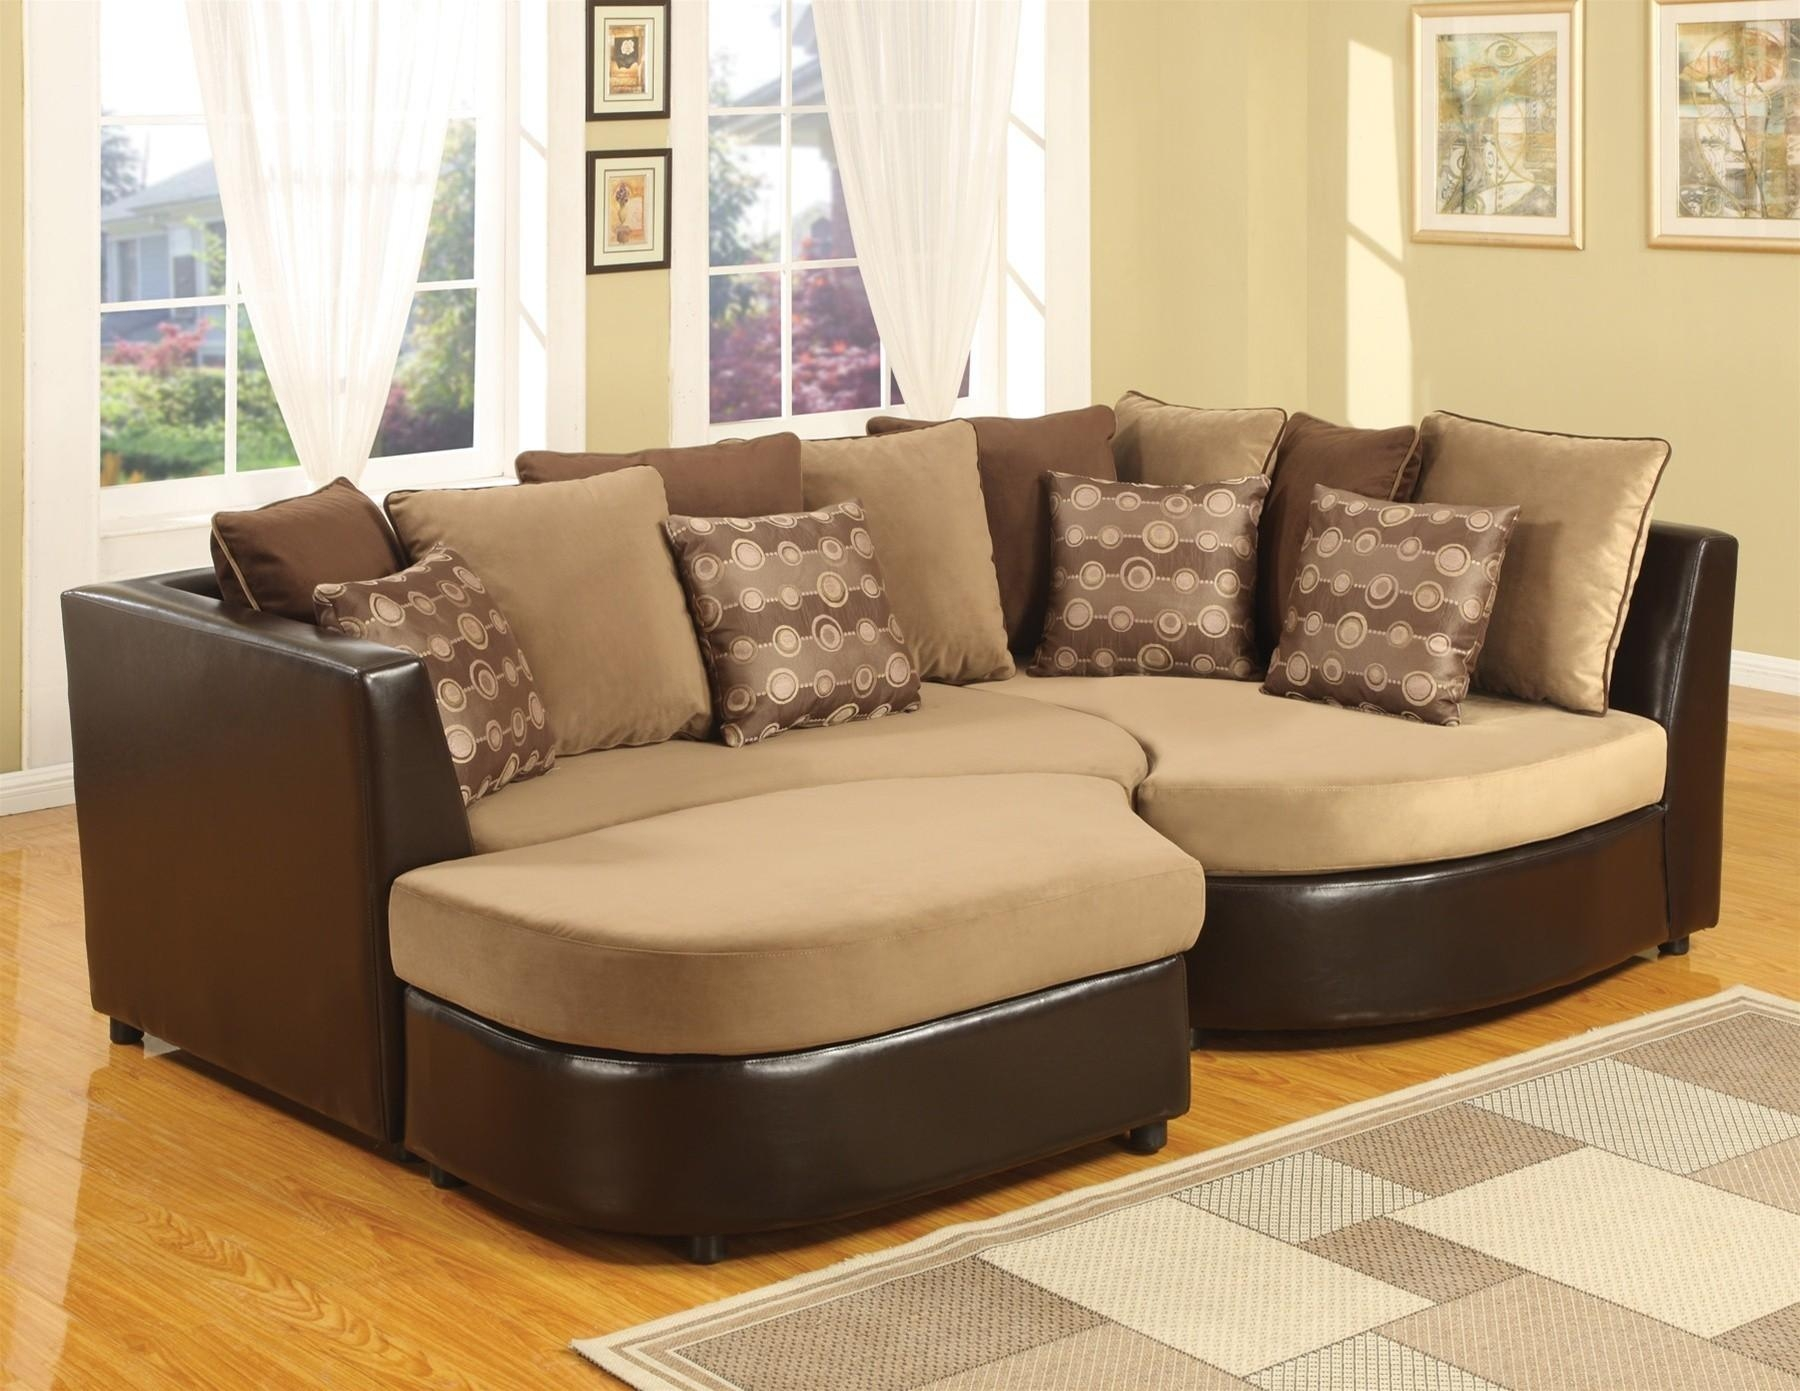 Queen Sofa Bed Sectional throughout Queen Sofa Sleeper Sectional Microfiber